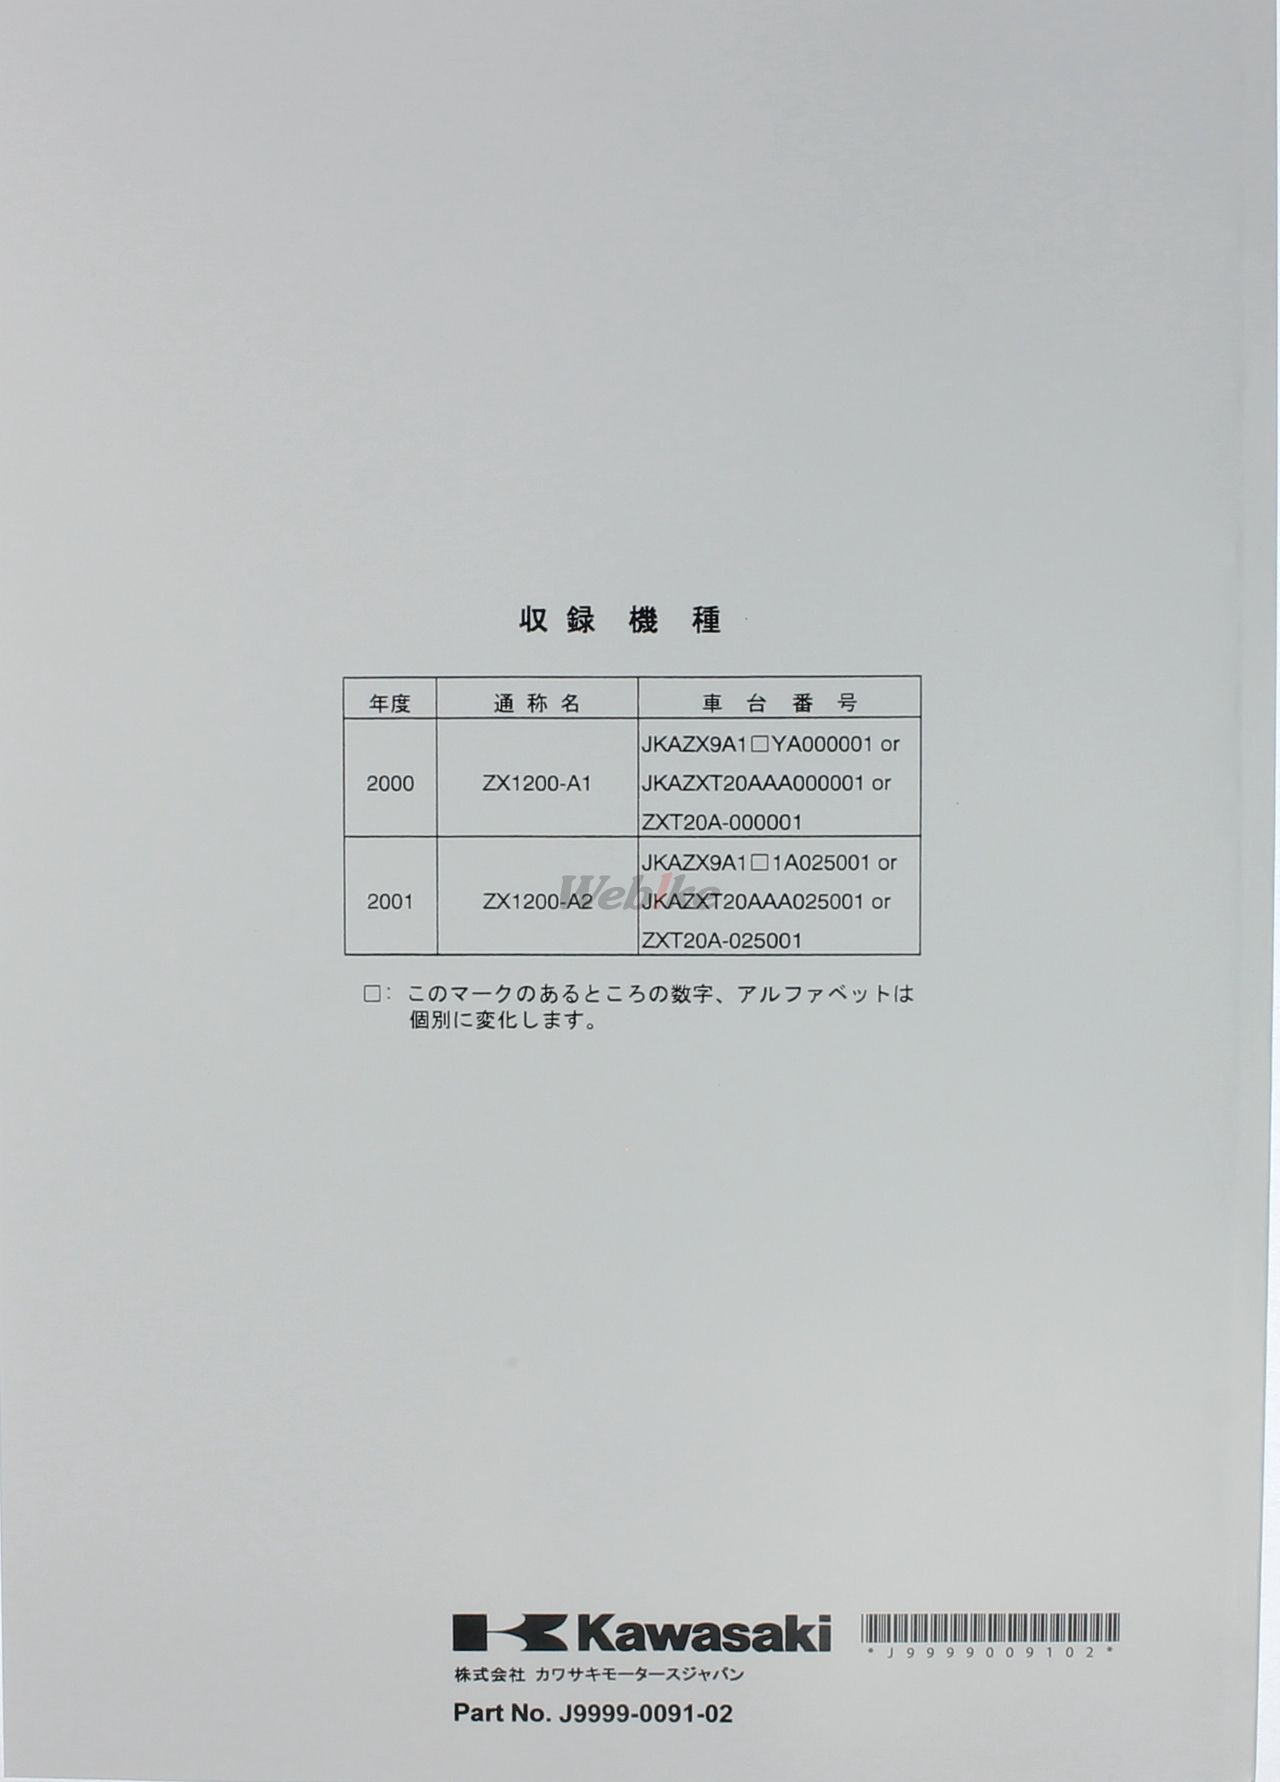 Kawasaki Service Manual Base Version Japanese J9999 0091 02 Kz440 Wiring Diagram Smart Diagrams Page 1 Of